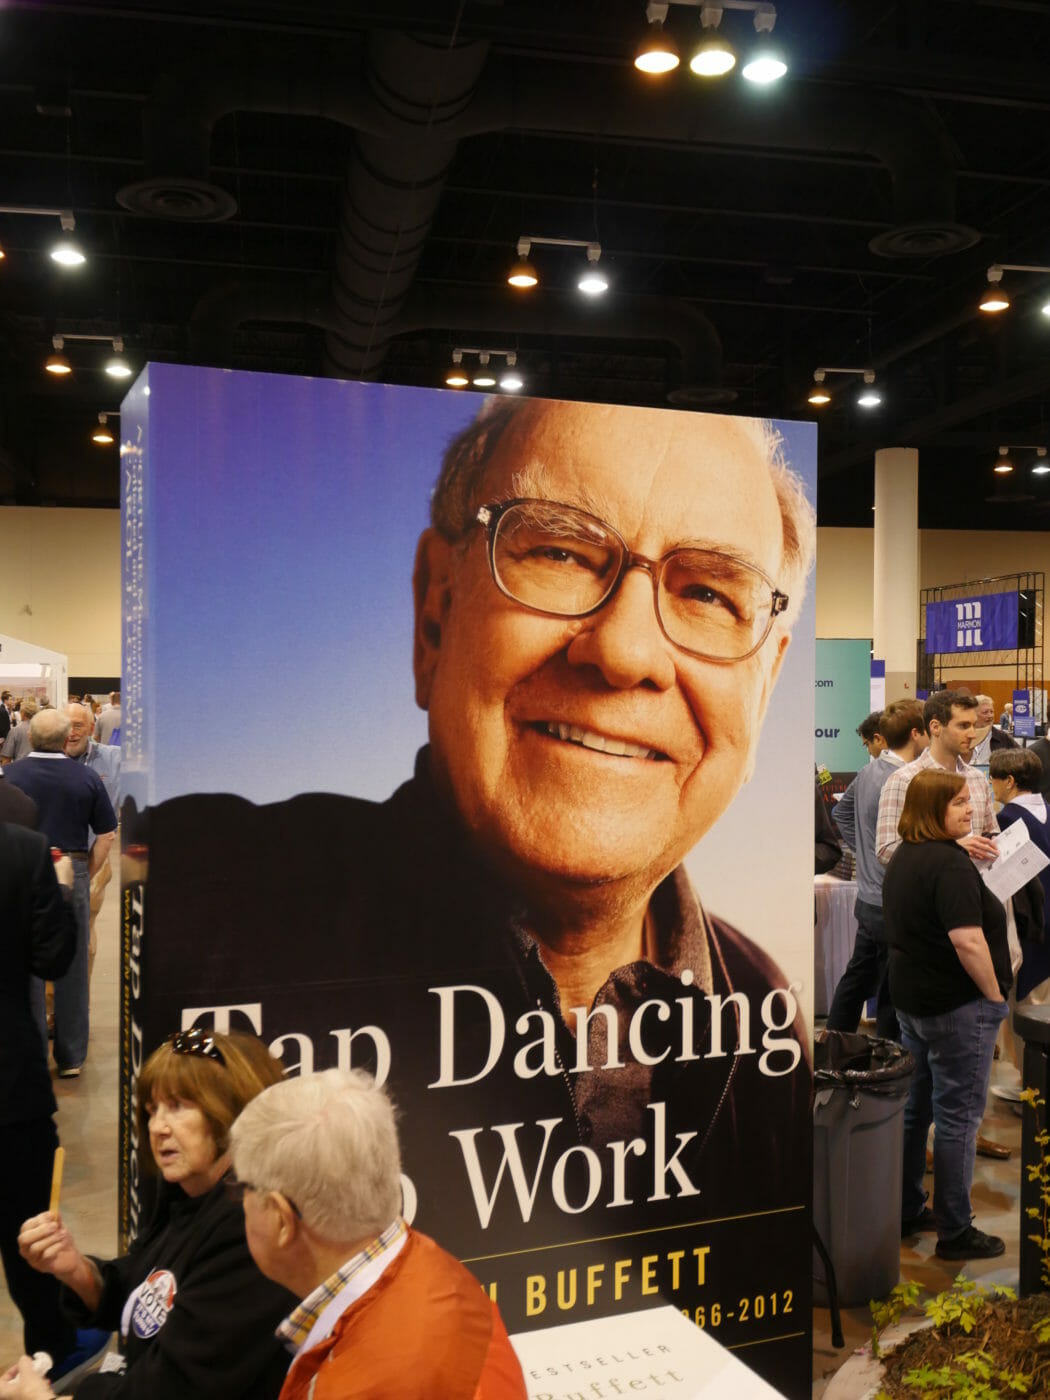 We give you our Berkshire Hathaway Shareholders' Meeting photos